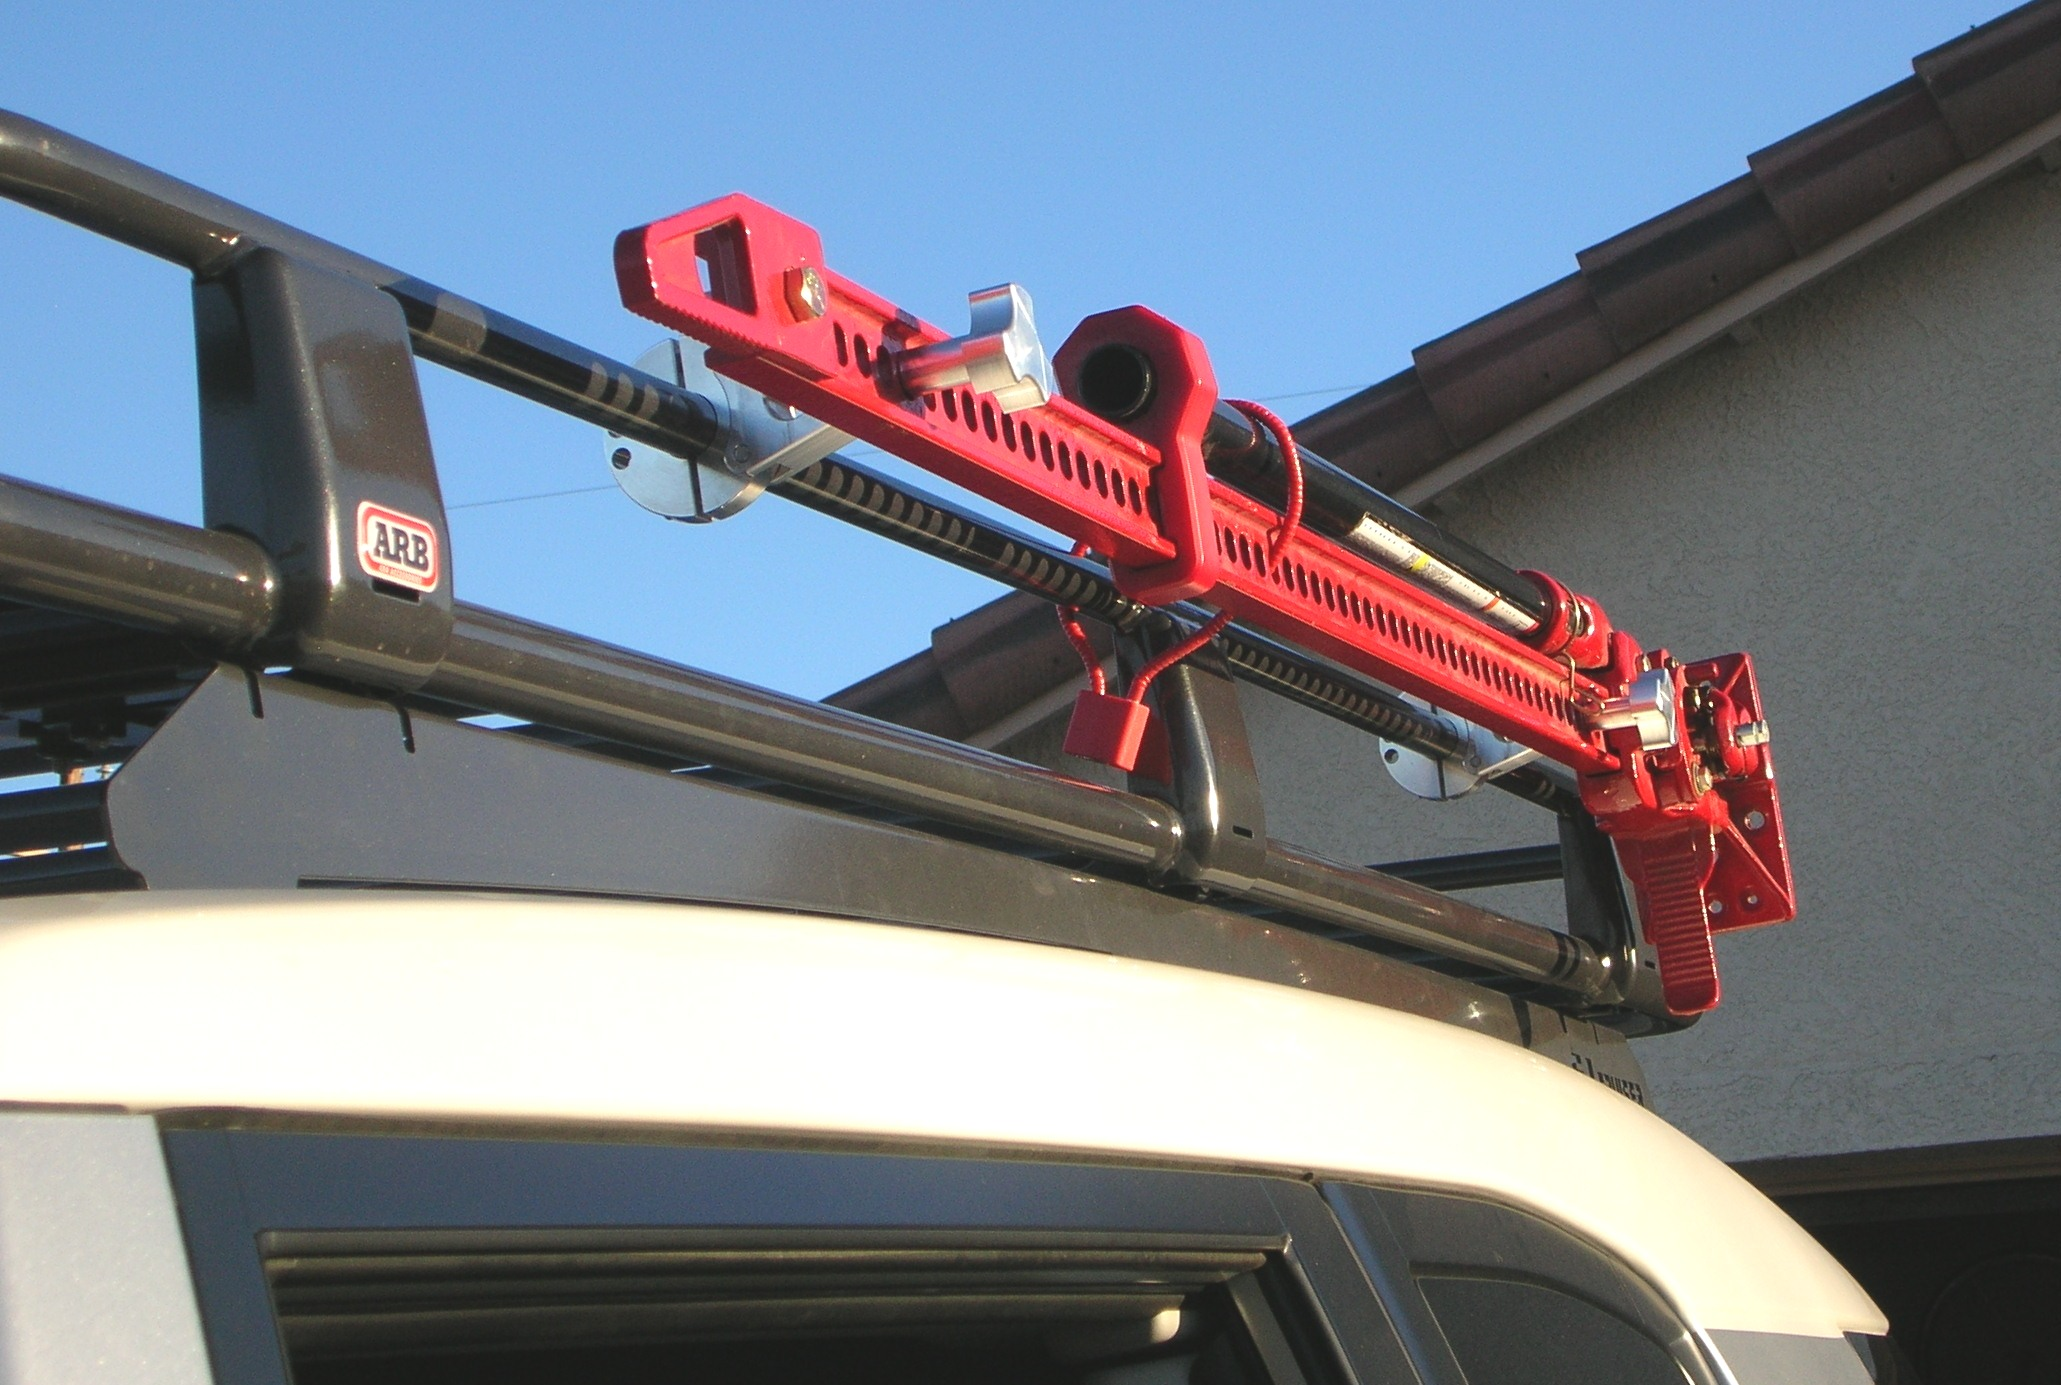 Hi-lift roll bar mounts.  Solutions to mount and store your gear safely while out on the trail!